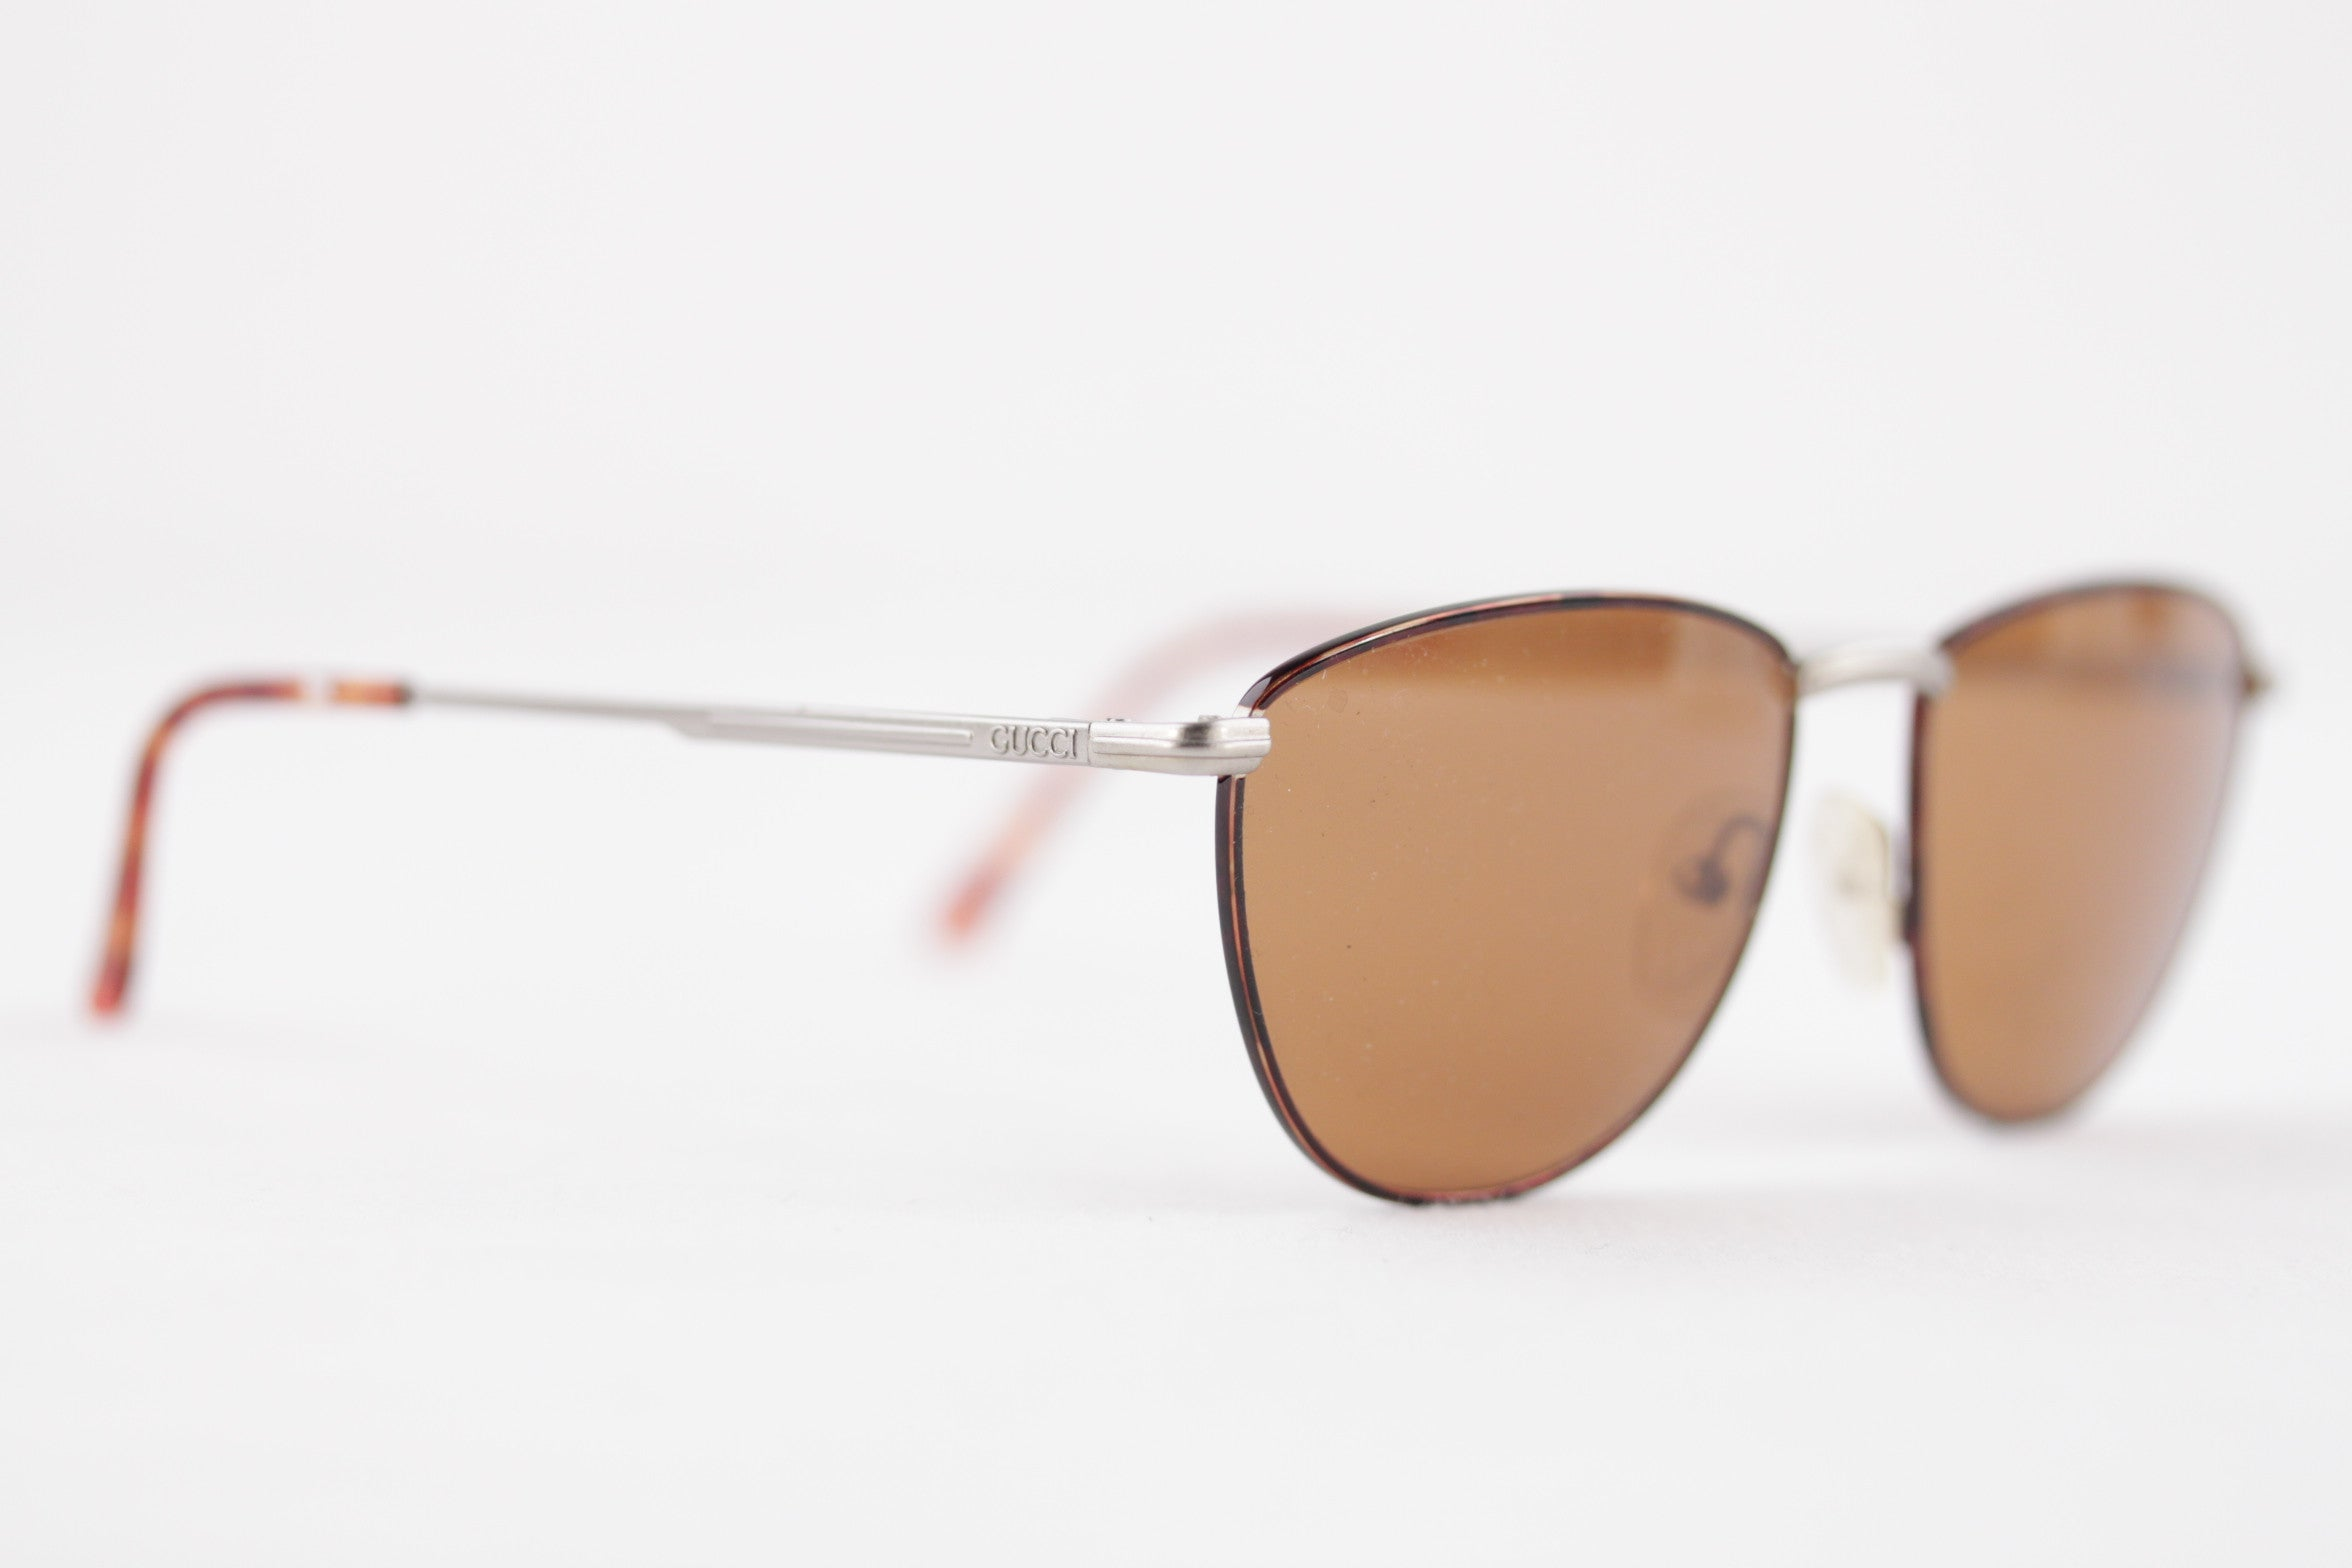 2210531d3d7be GUCCI Vintage SUNGLASSES GG 2238 84S 135 Brown Gold womens EYEWEAR For Sale  at 1stdibs